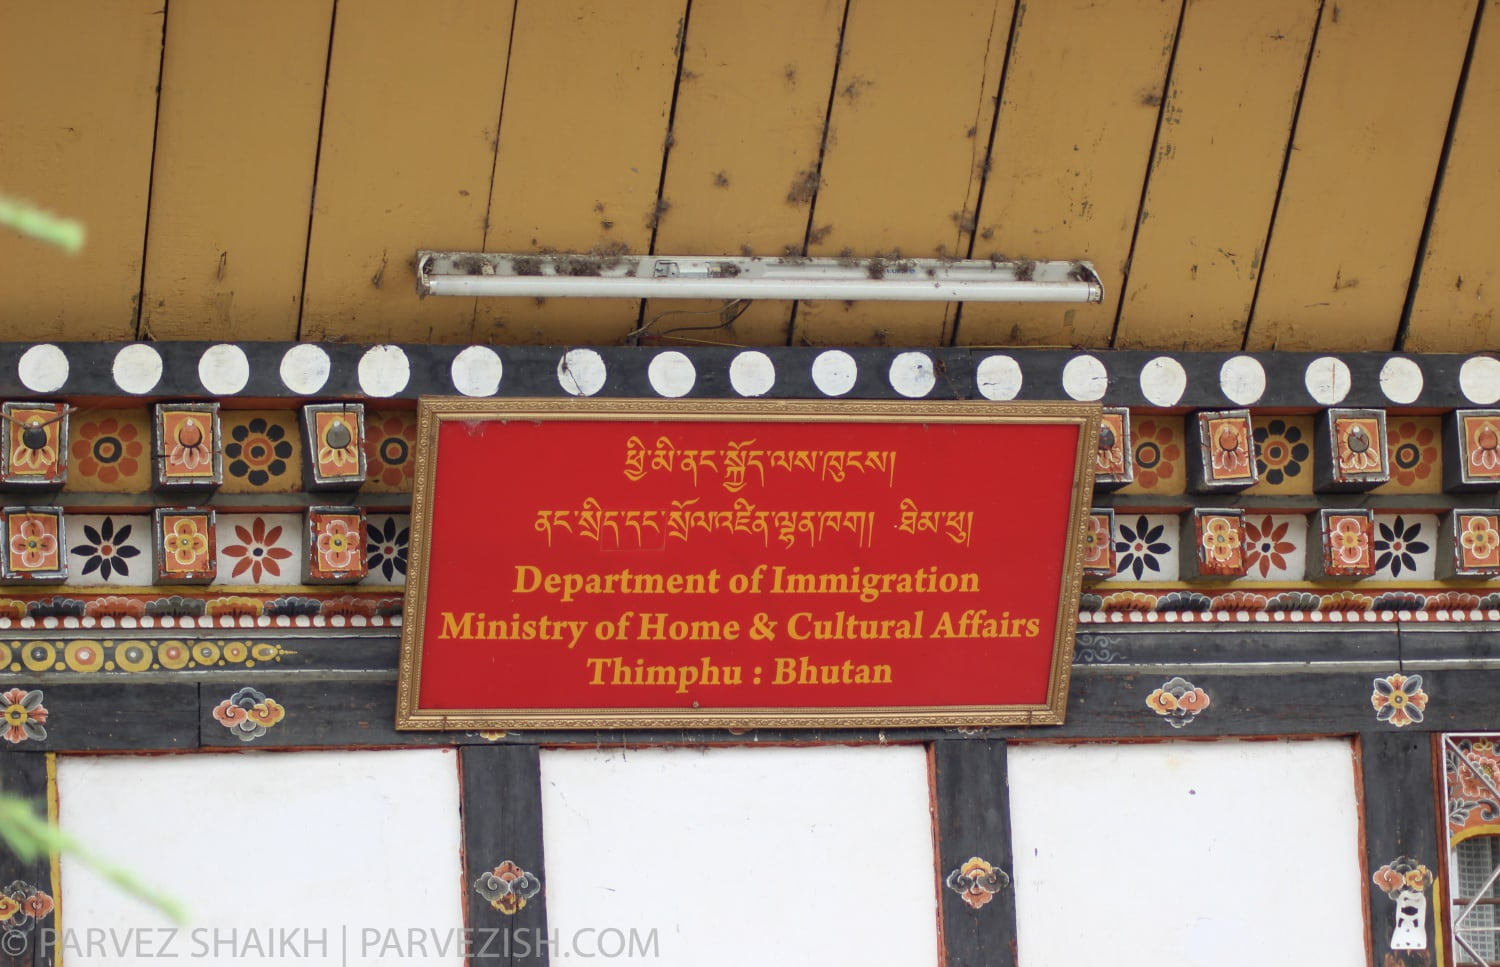 Bhutan Department of Immigration, Thimpu